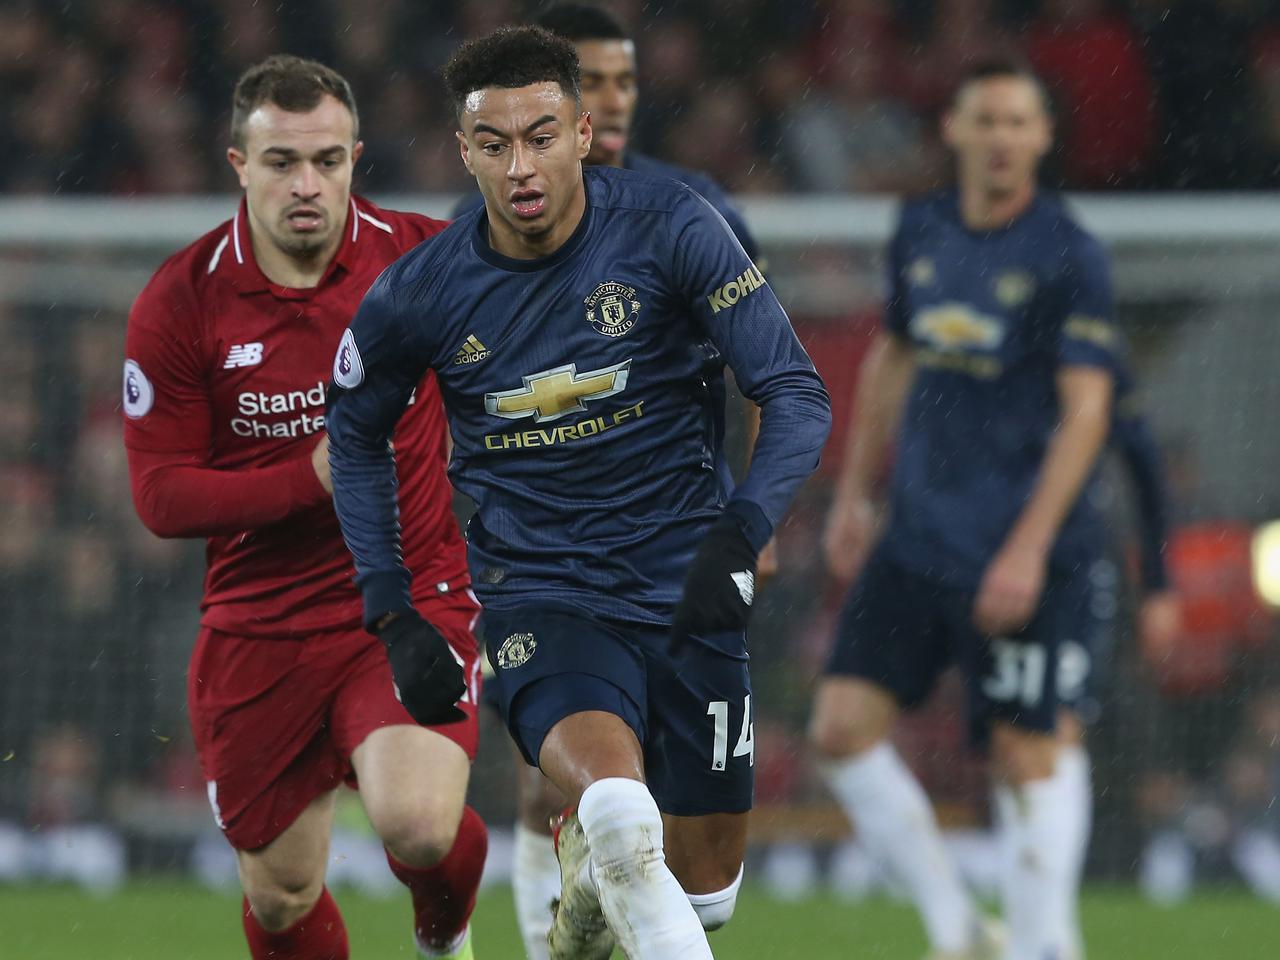 Liverpool V Man United Preview Tickets Live Updates Tv Channel Manchester United